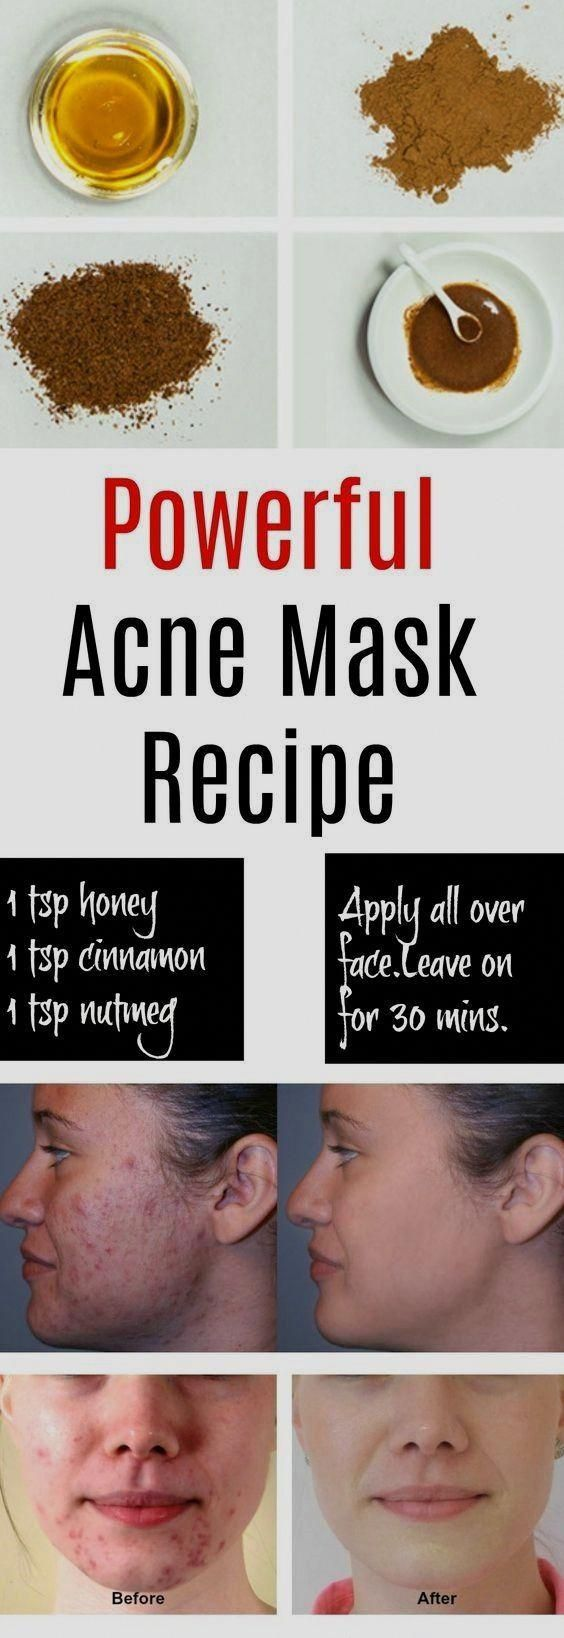 Home Remedies For Pimples And Blackheads For Oily Skin Best Home Remedy For Acne Overnight H In 2020 Natural Acne Treatment Diy Acne Treatment Back Acne Treatment